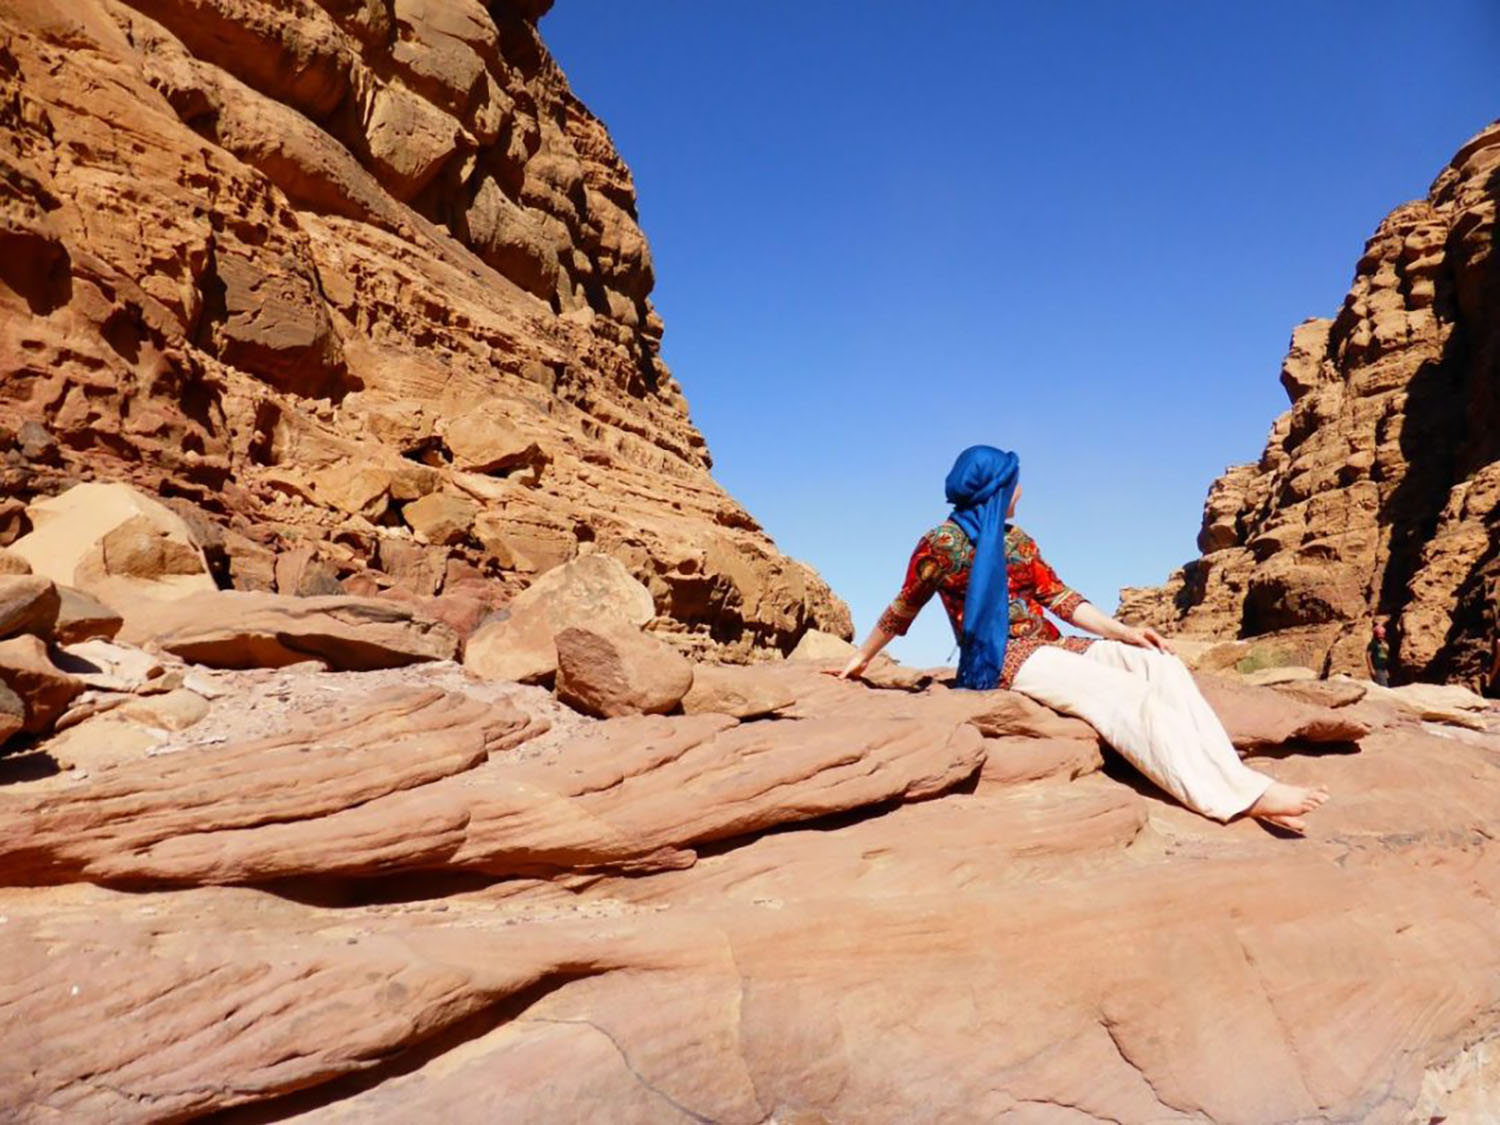 Is it safe for a woman to travel solo in Iran?